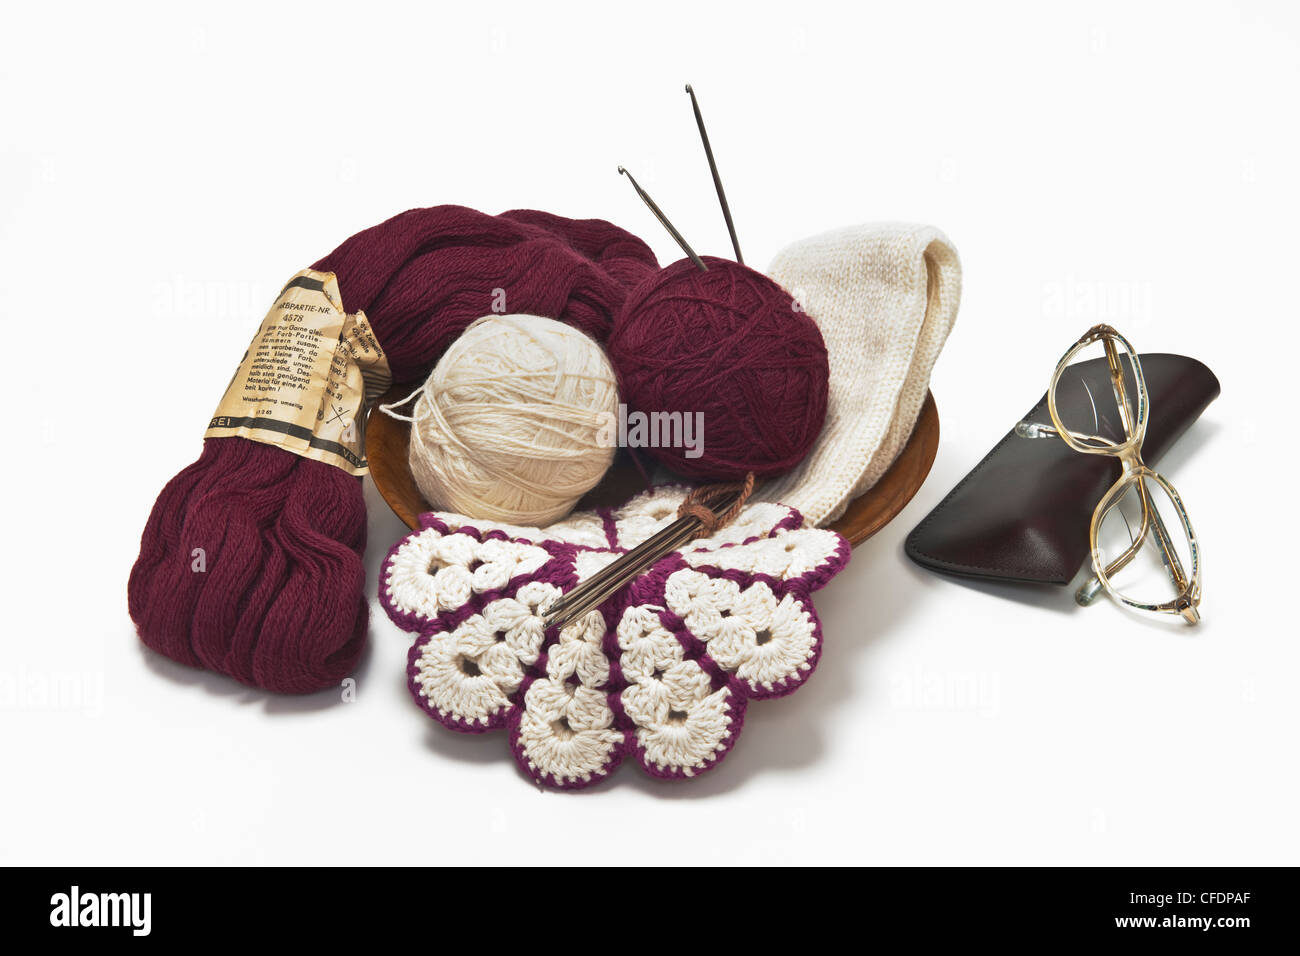 different wool, a potholder, knitting needles and glasses are close to each other - Stock Image